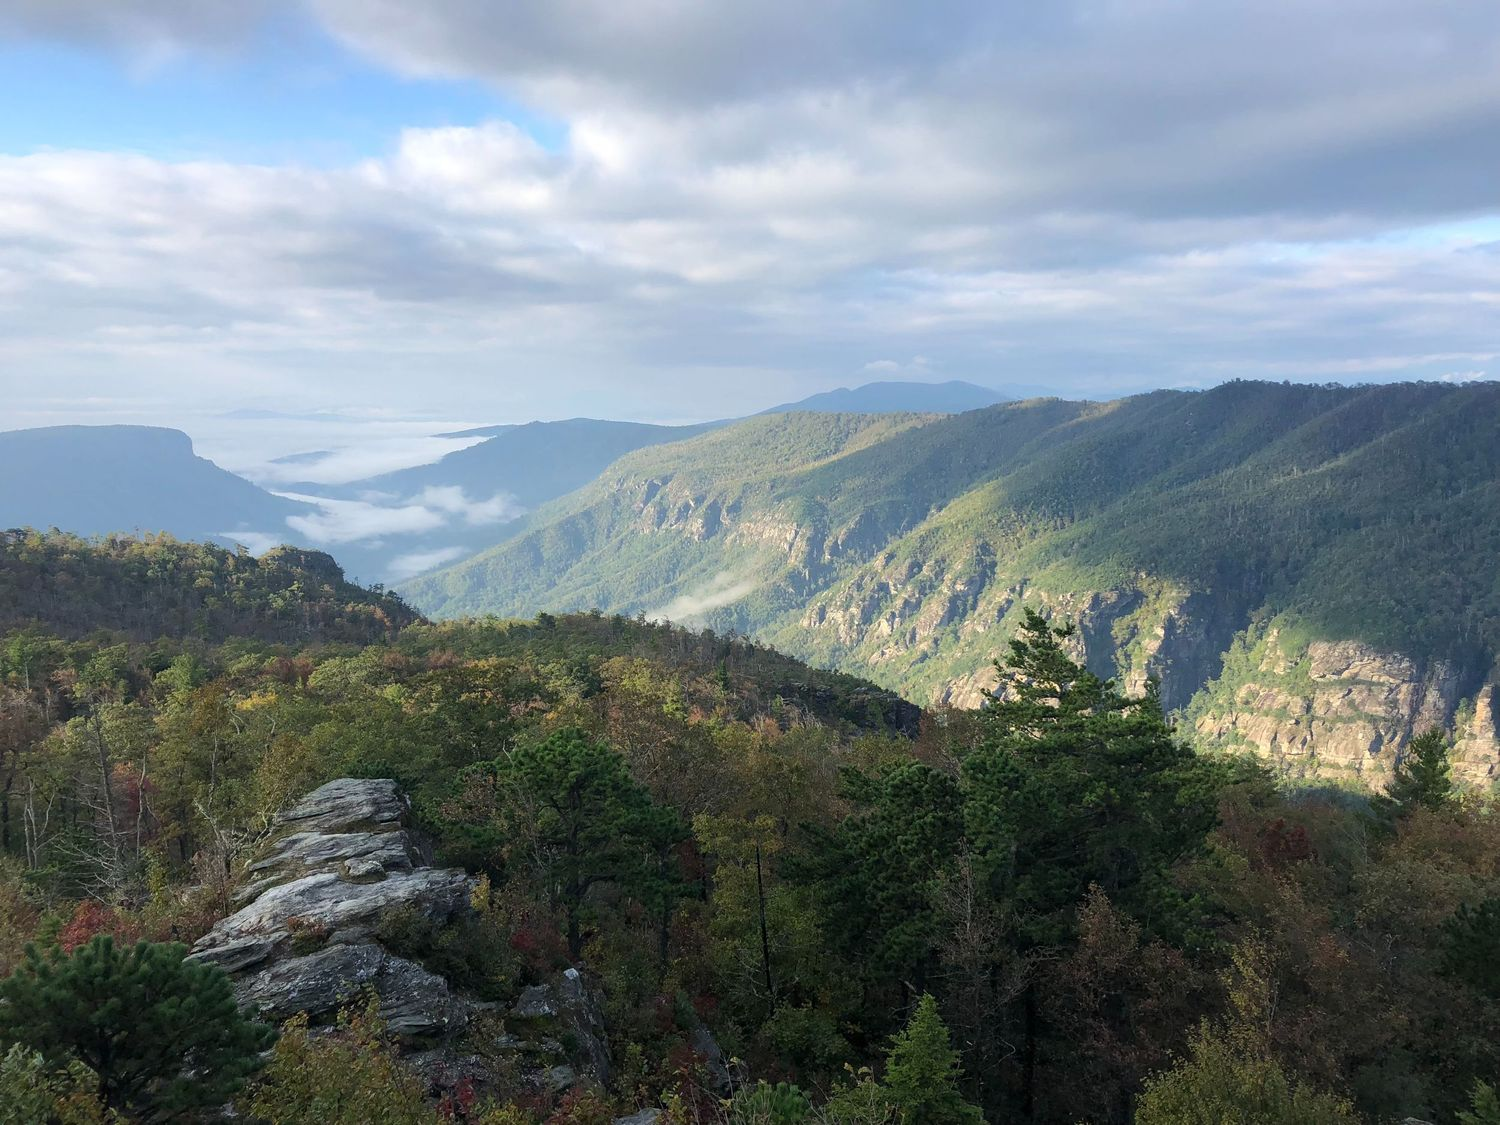 Linville Gorge in North Carolina.